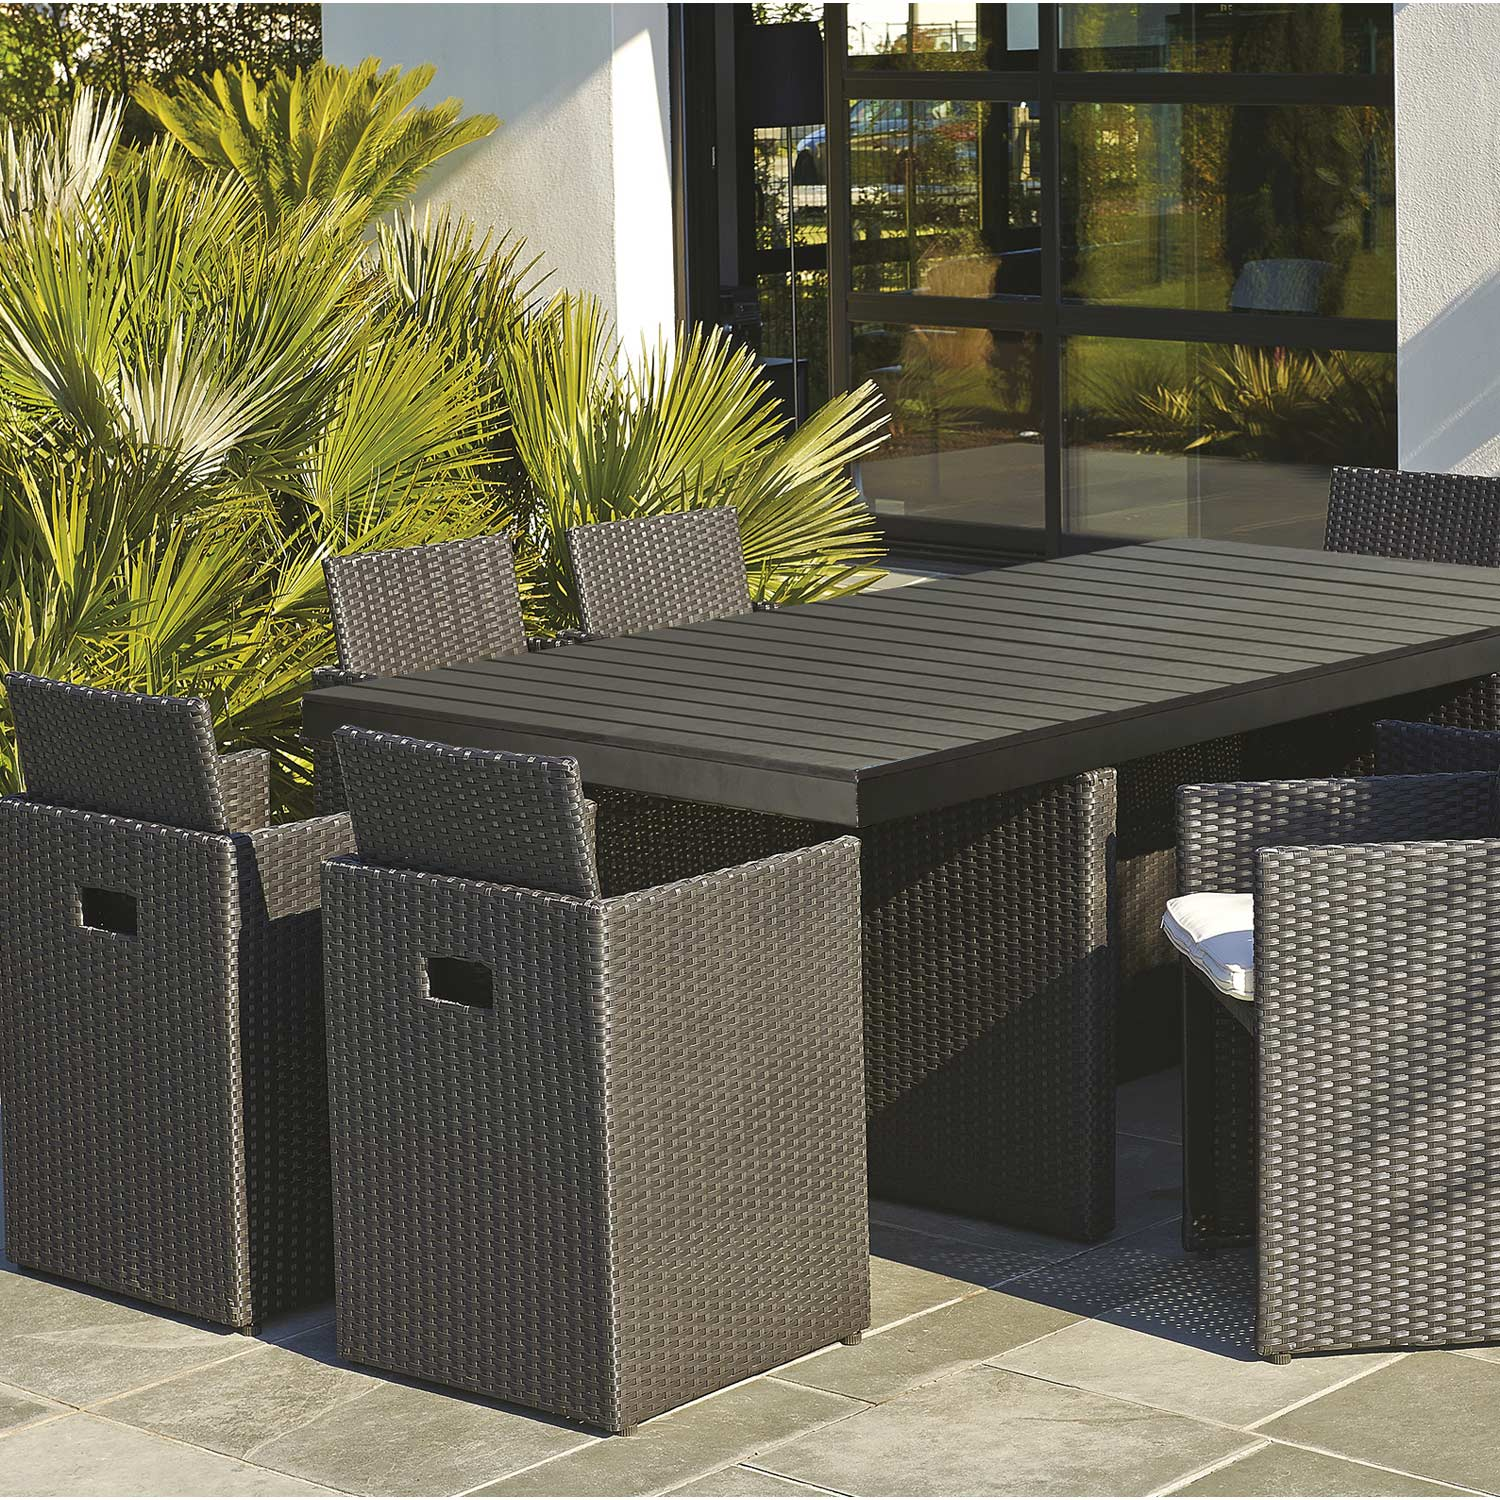 Salon de jardin encastrable r sine tress e noir 1 table 8 fauteuils leroy - Table basse resine tressee noir ...